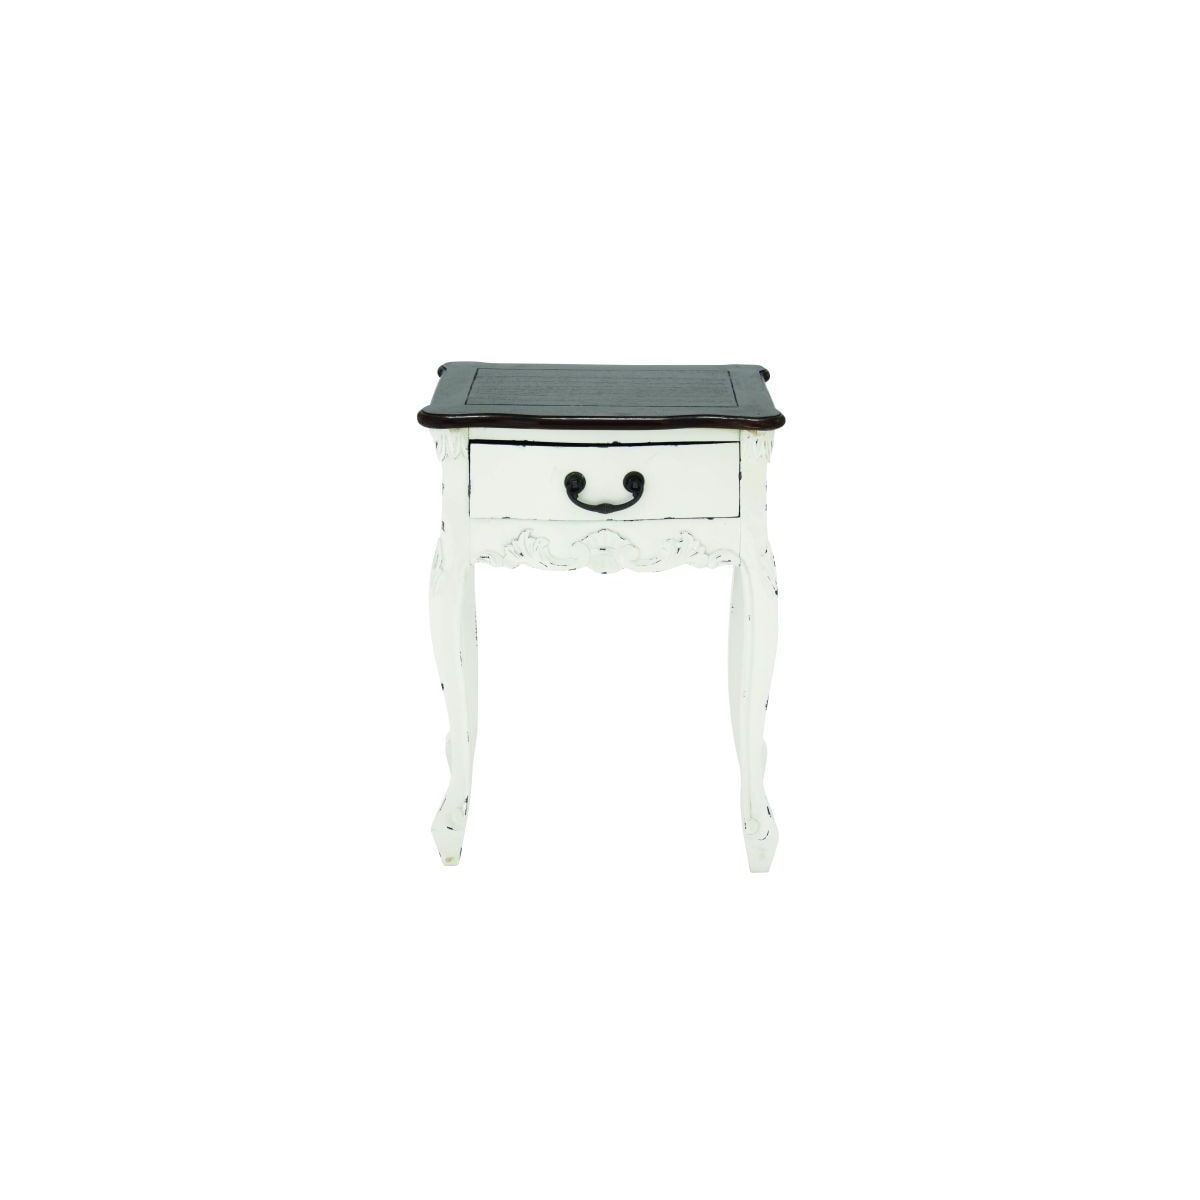 Wood Side Table (19 inches wide x 24 inches high) (WD SIDE TABLE 19W, 24H)